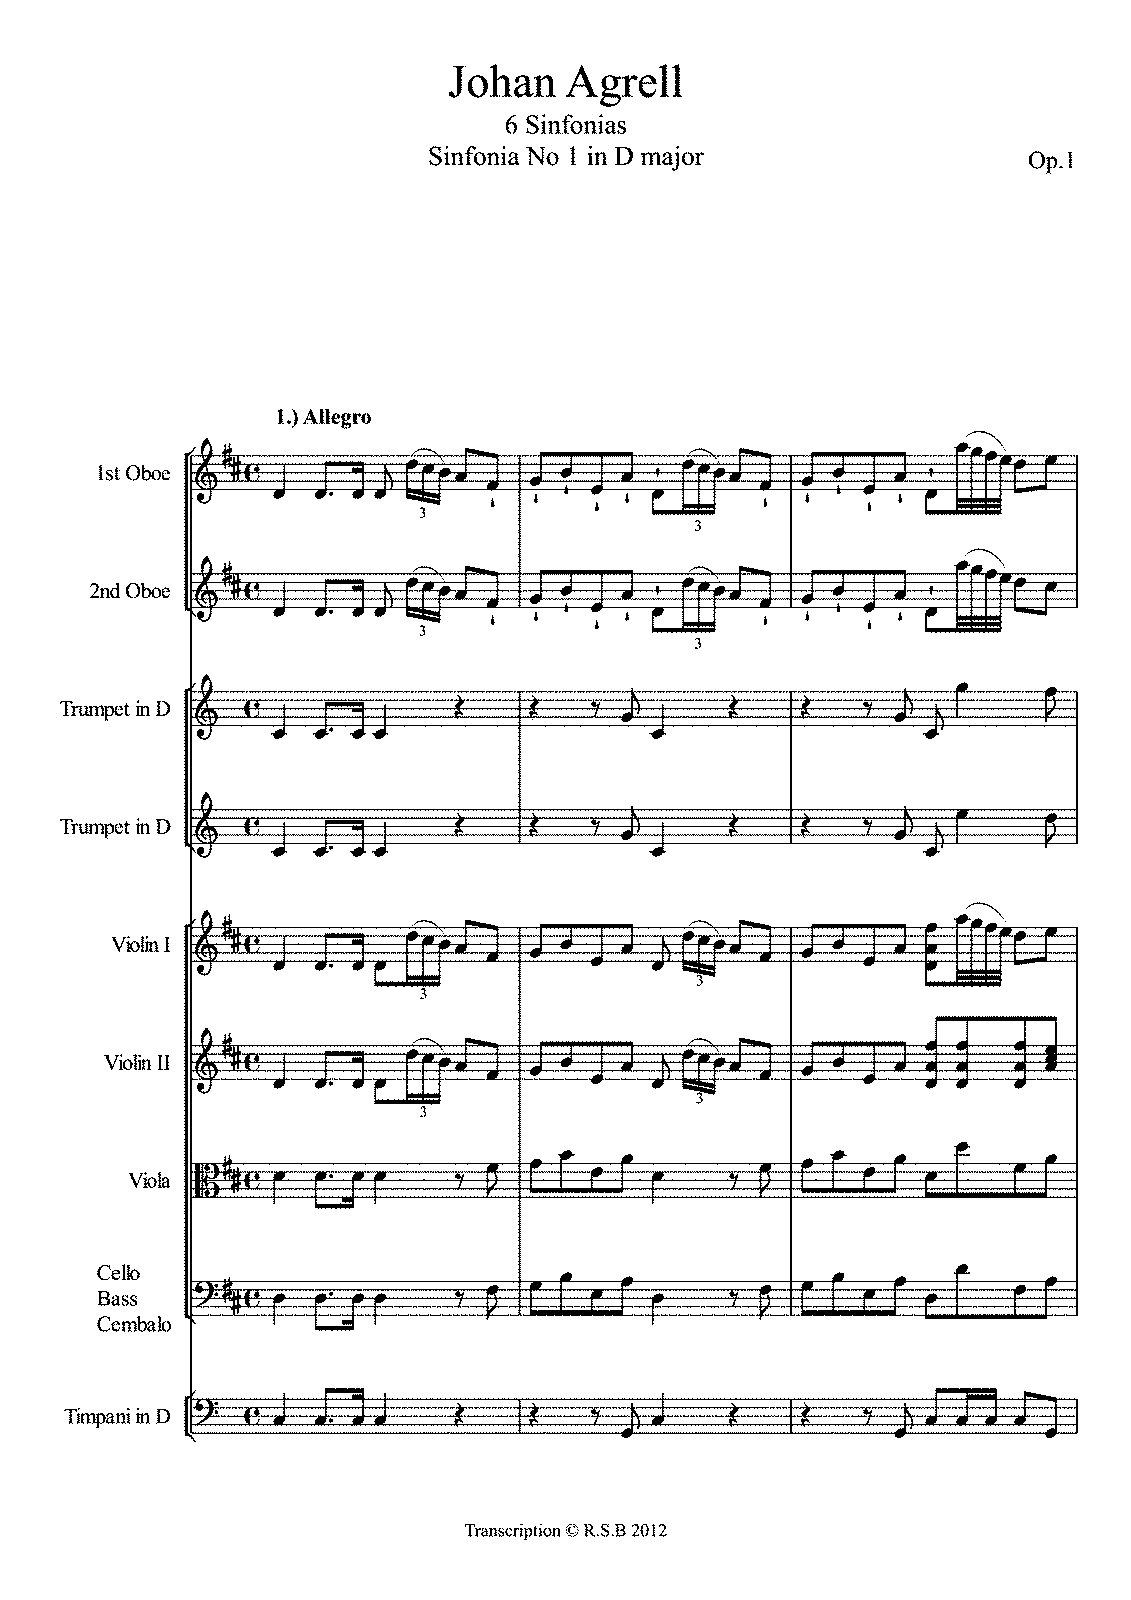 PMLP234228-Agrell Sinfonia No 1 in D - I. Allegro.pdf